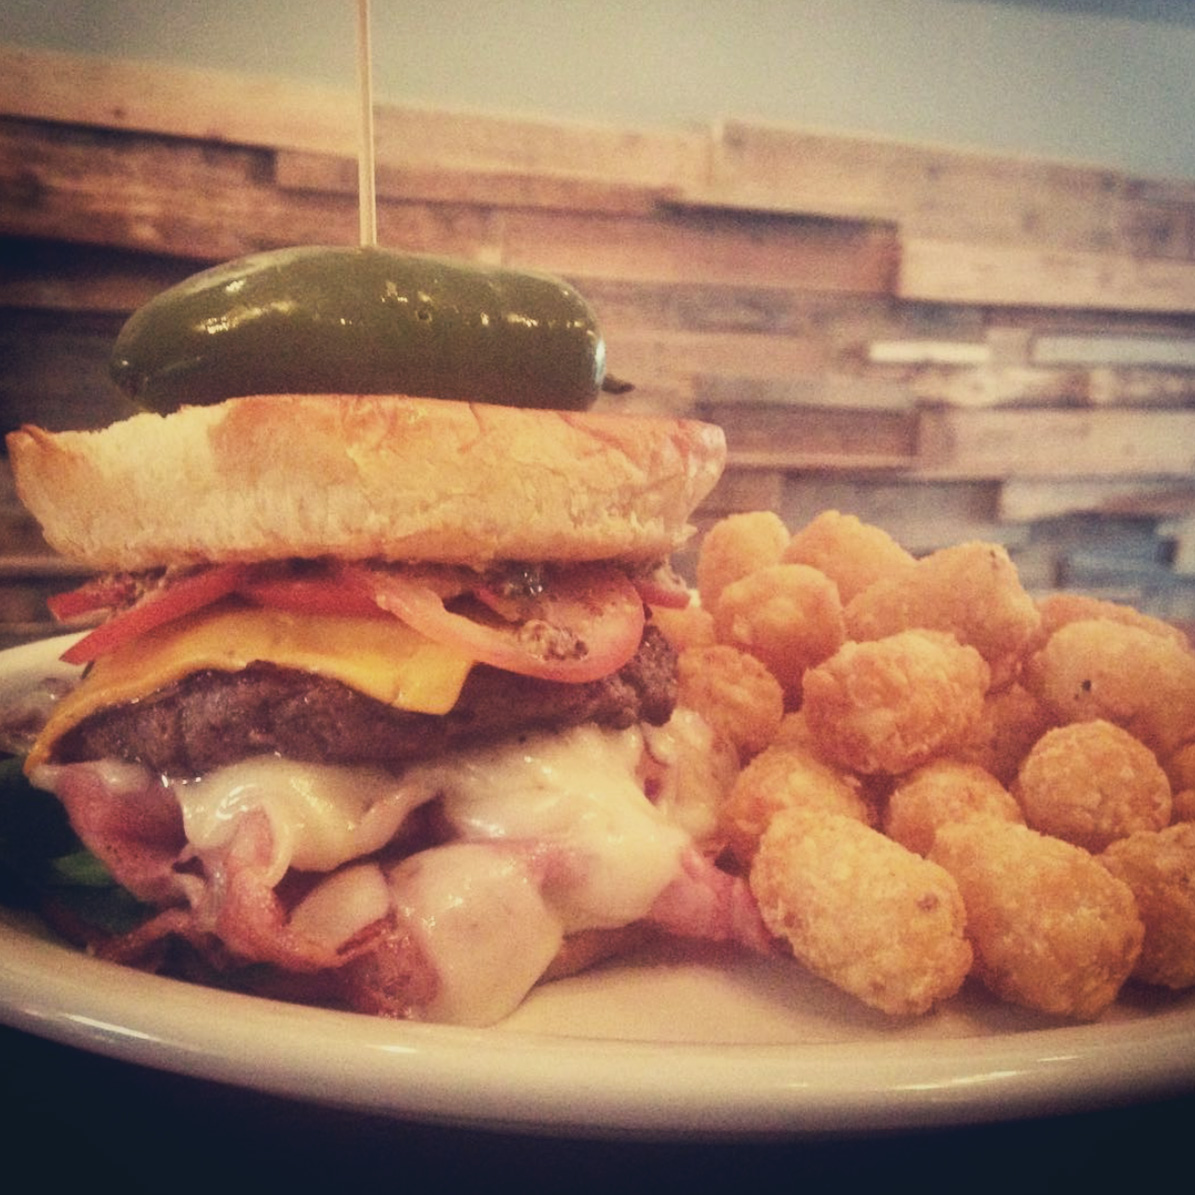 Sandwich with tater tots